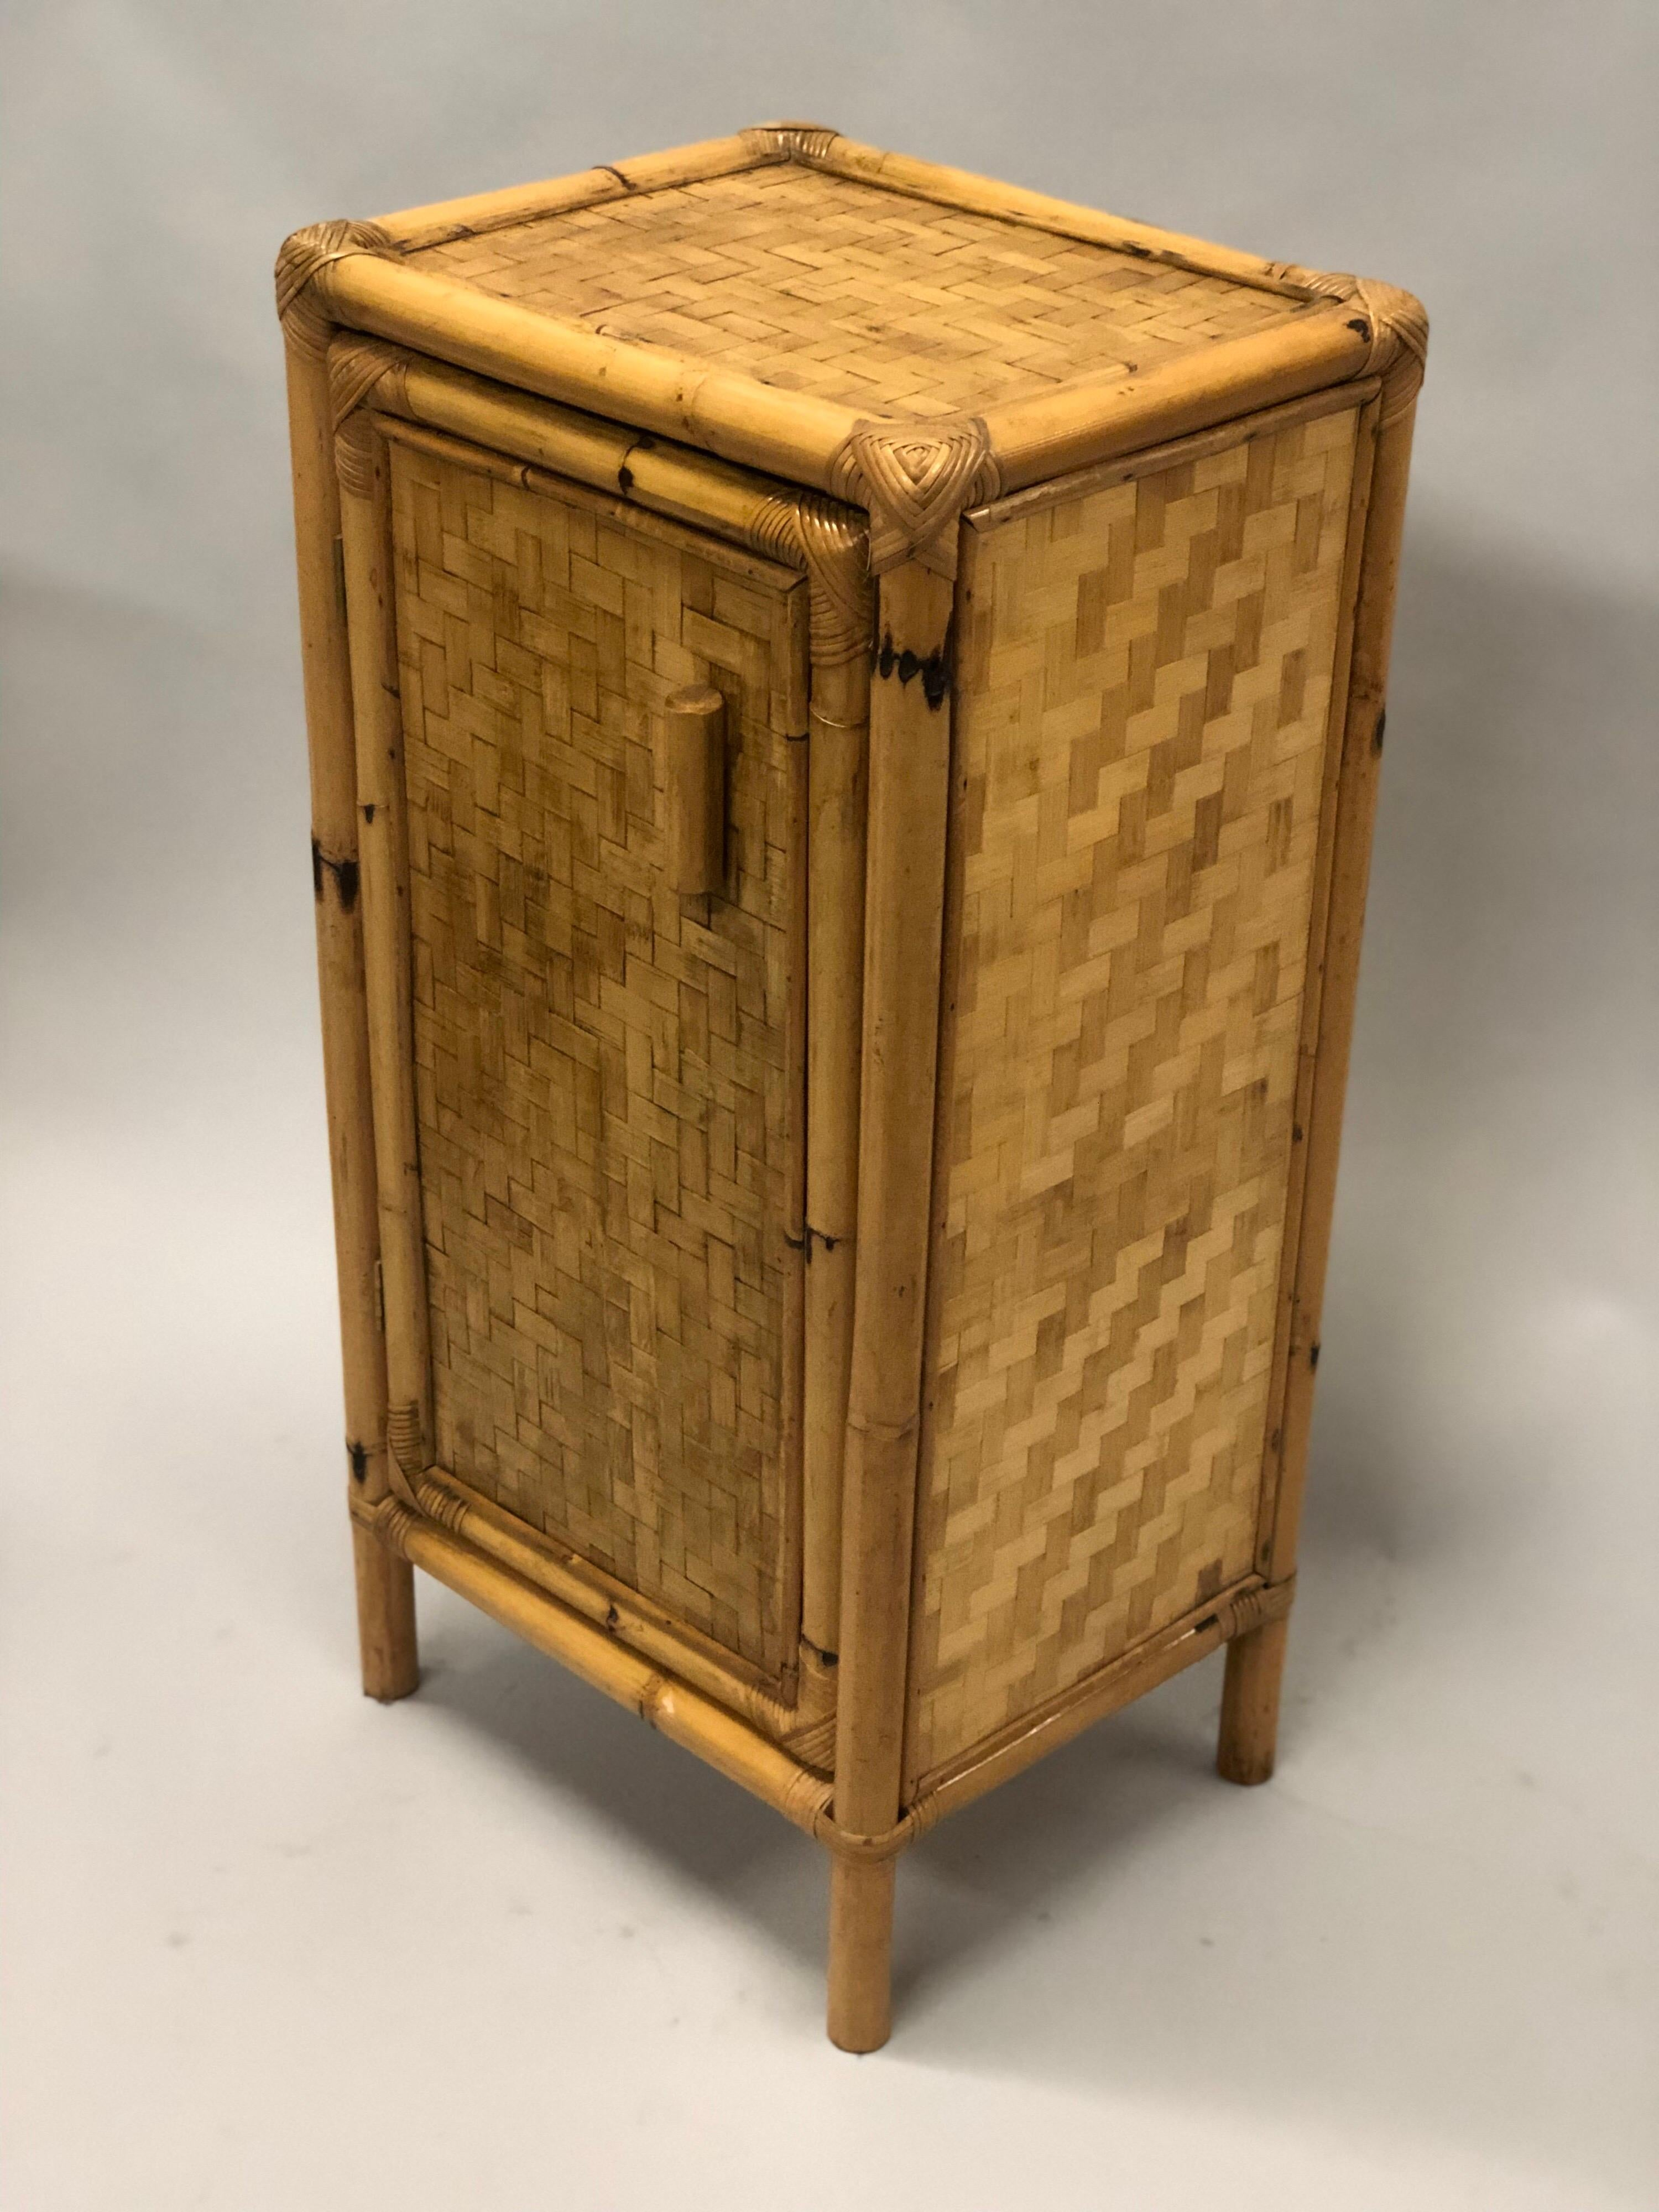 Pair Of Italian Midcentury Bamboo And Rattan Nightstands Or Side Tables For Sale At 1stdibs